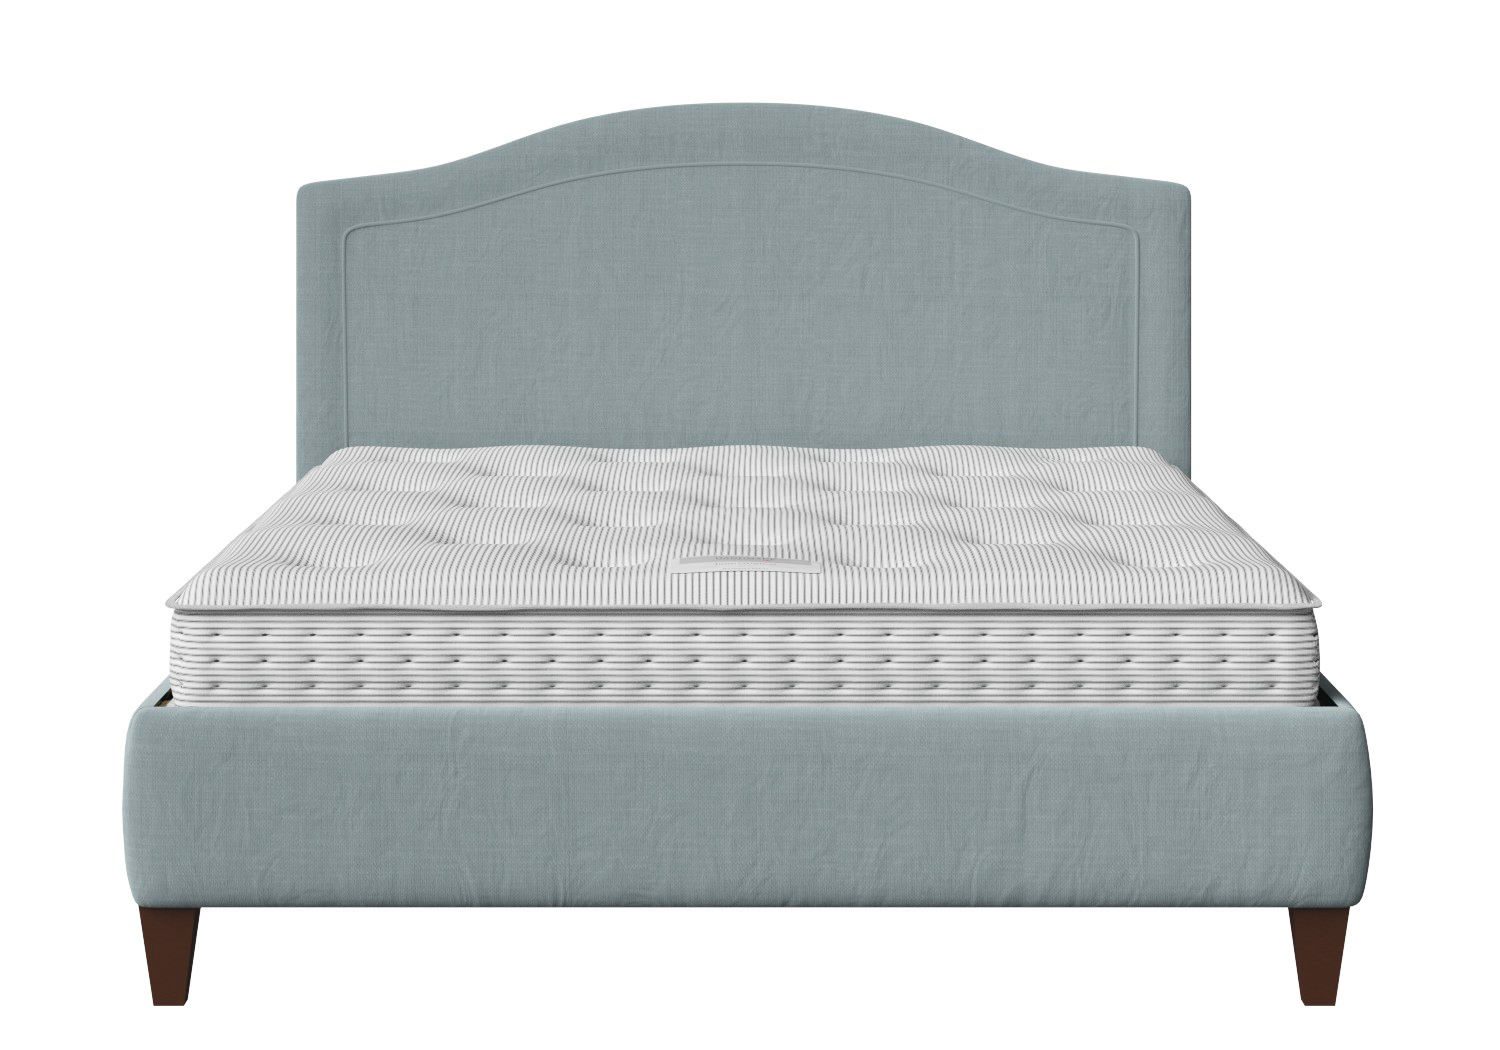 Daniella Upholstered bed in Wedgewood fabric shown with Juno 1 mattress